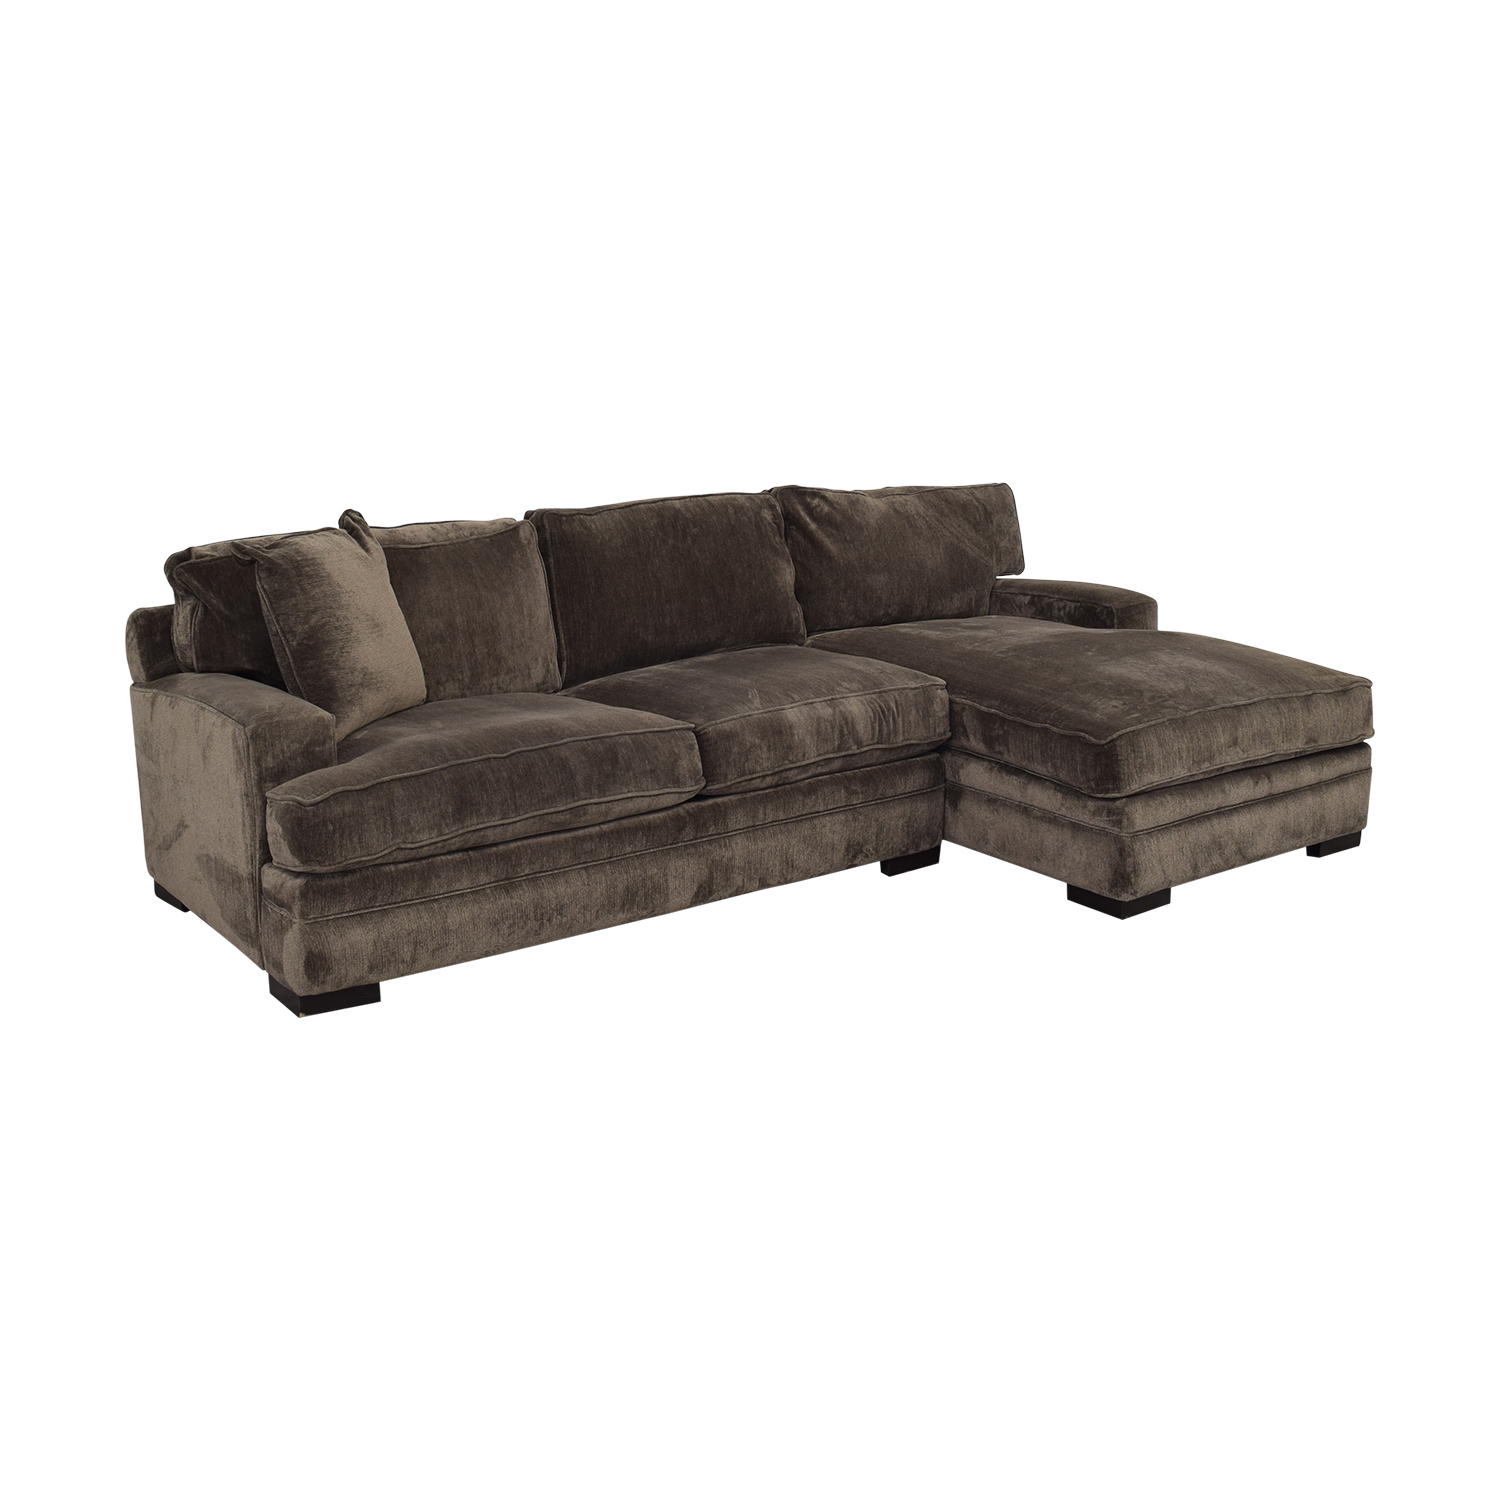 Macy's Teddy Brown Two Cushion Left Arm Sofa / Sectionals